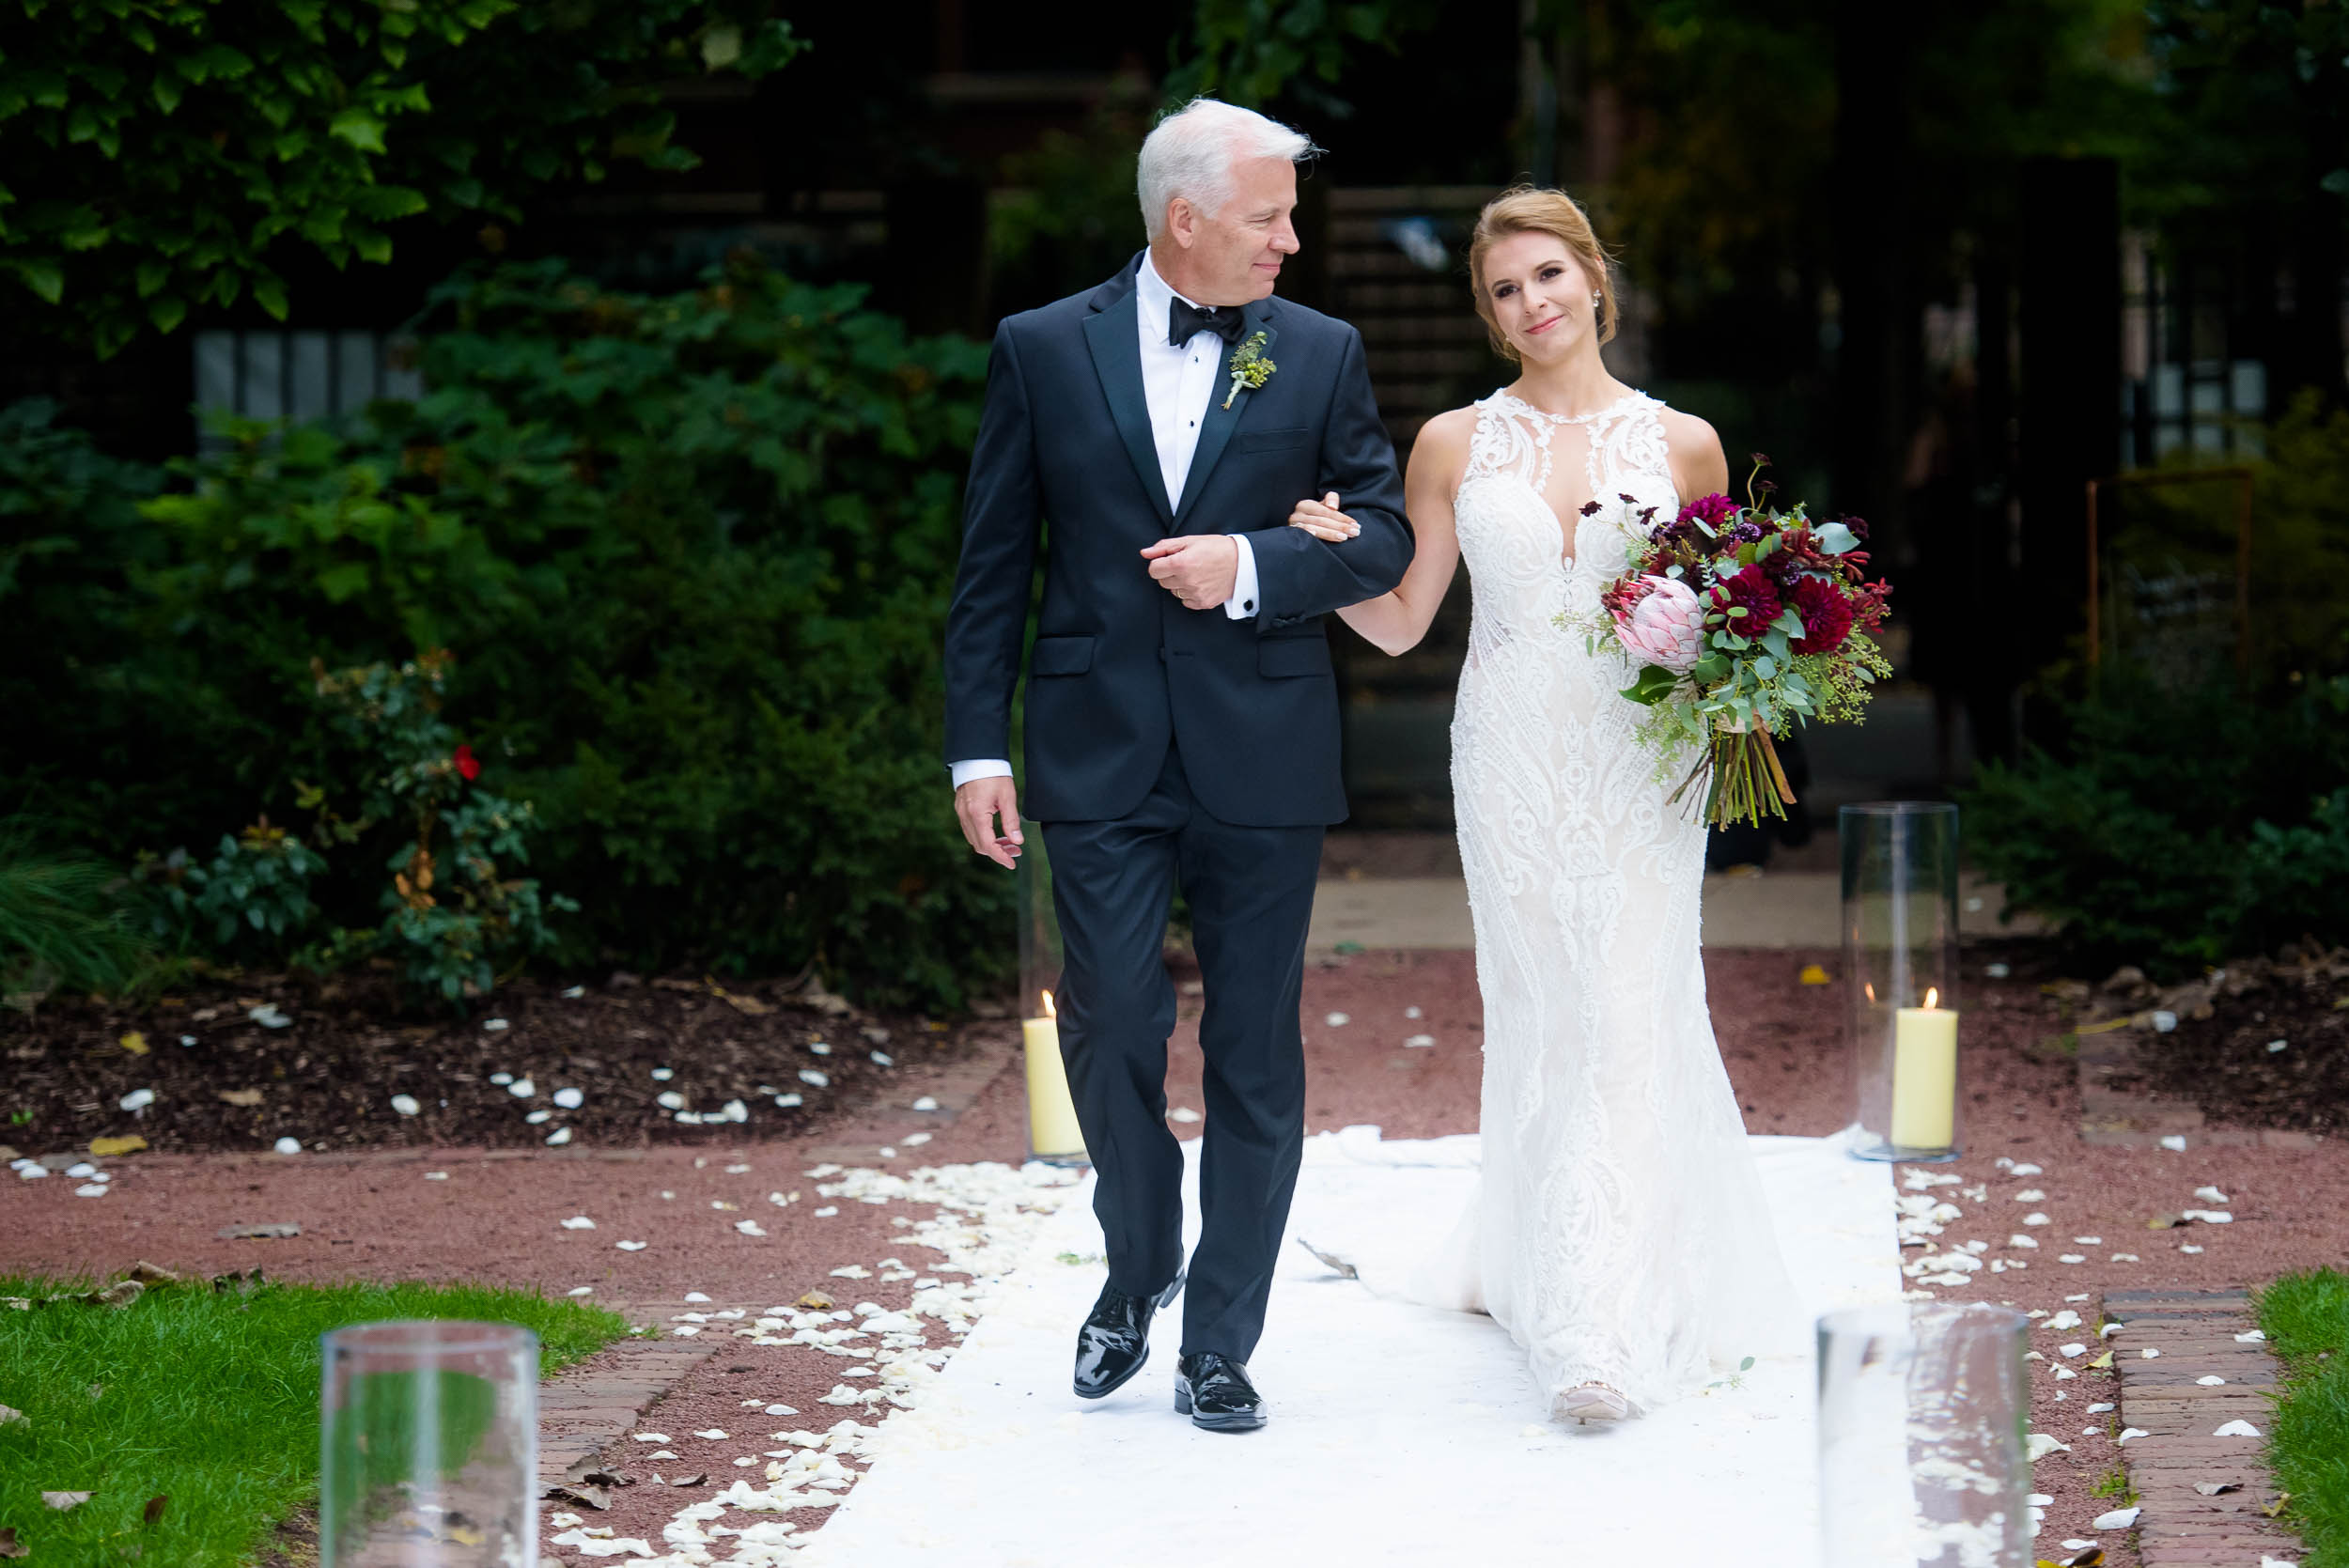 Father and bride walk down the aisle during a Glessner House Chicago wedding.